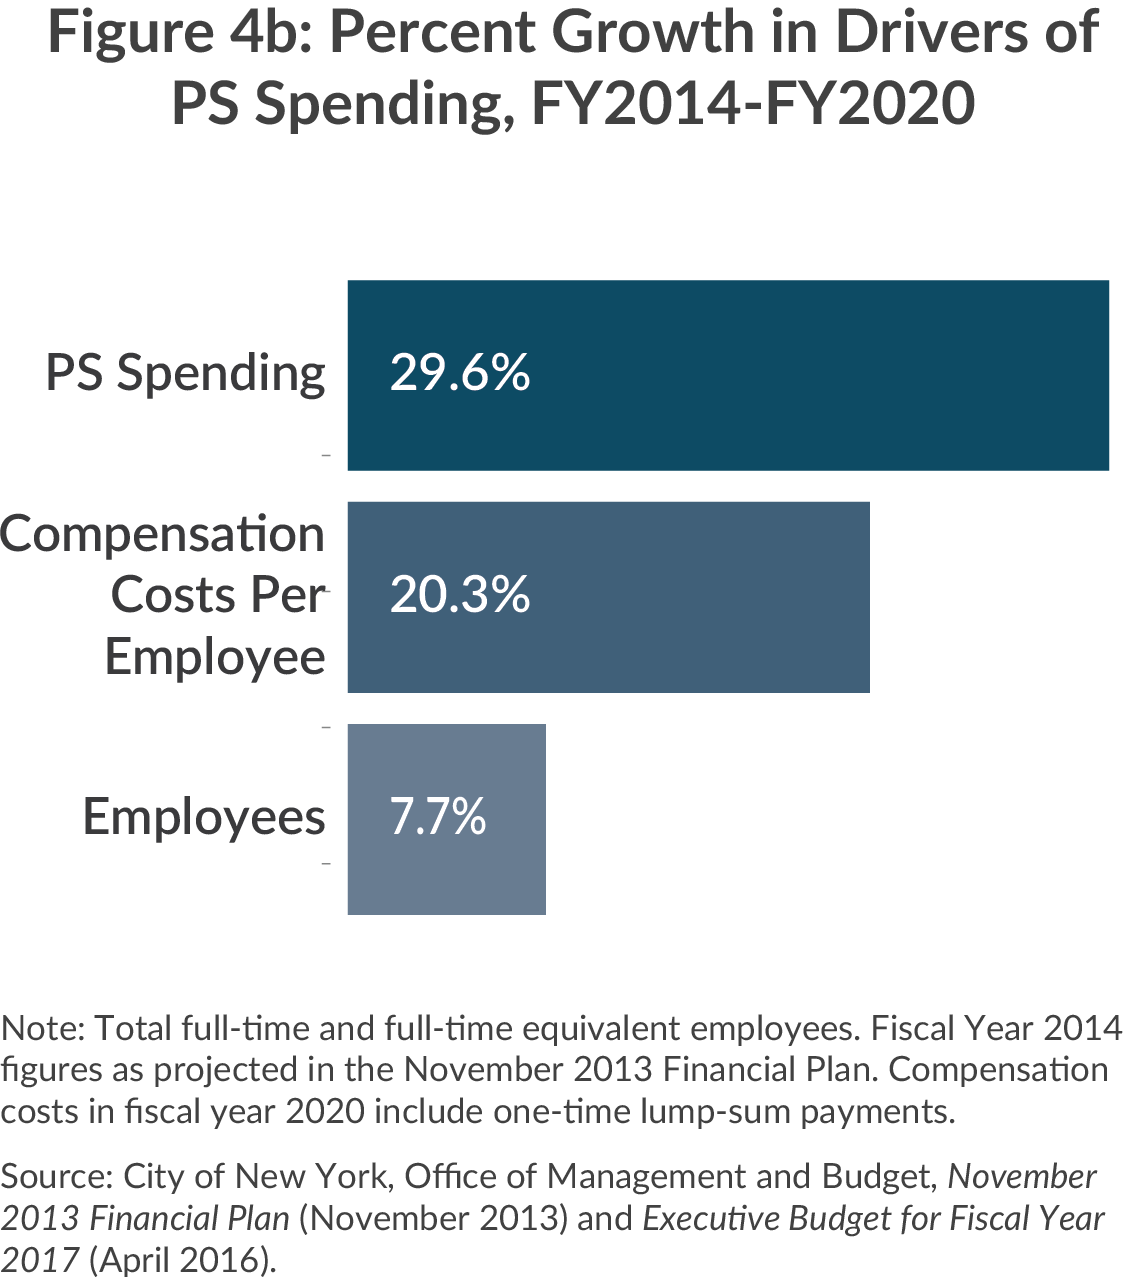 Percent growth in drivers of PS spending, Fy2014-2020